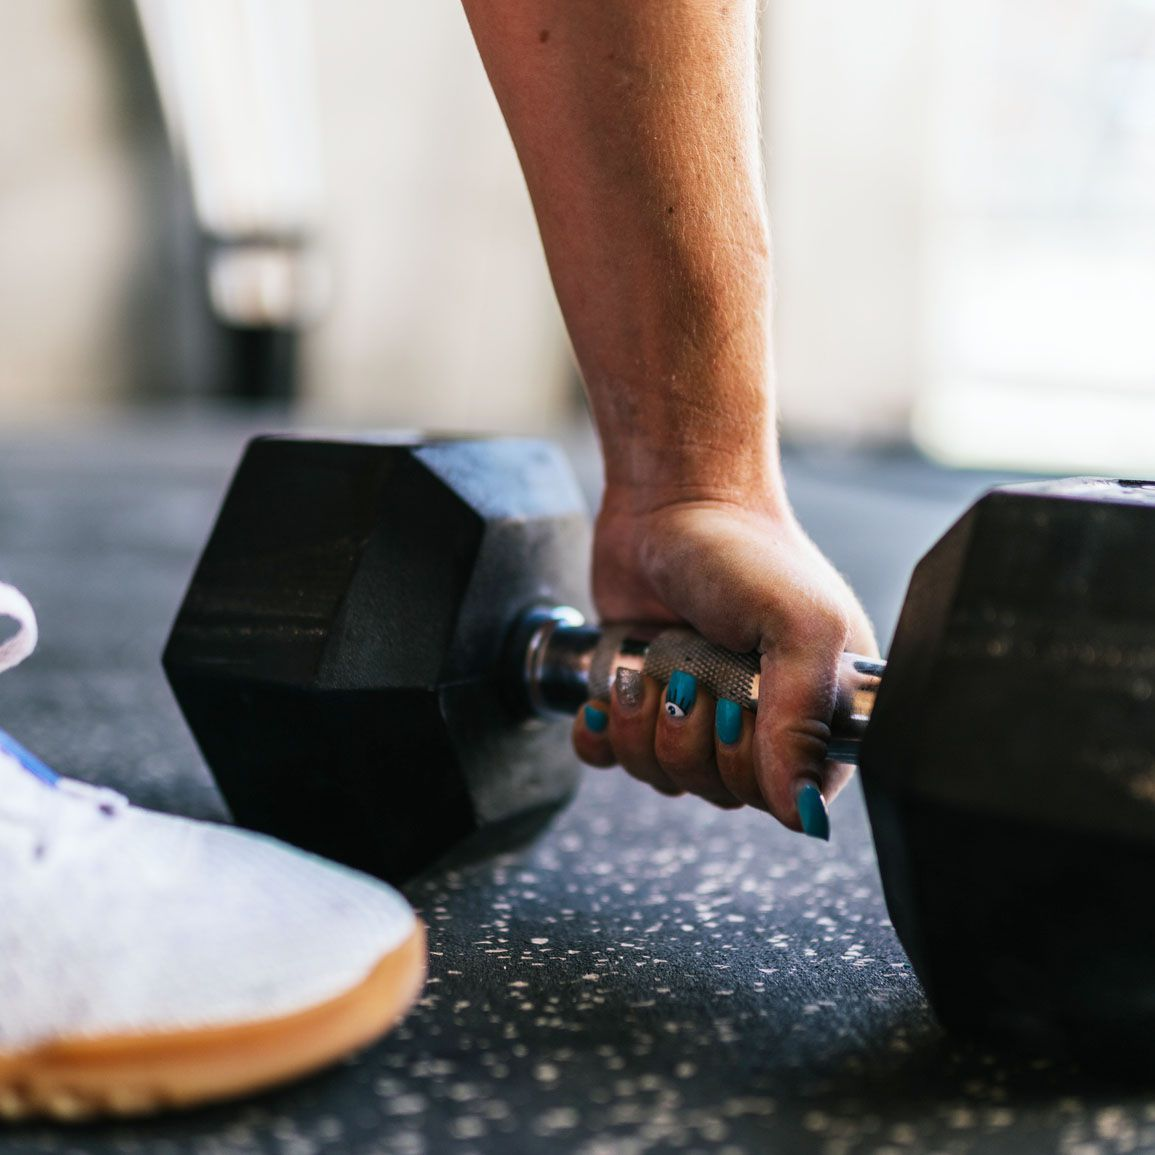 Beginner's Guide to Getting Started With Weight Training